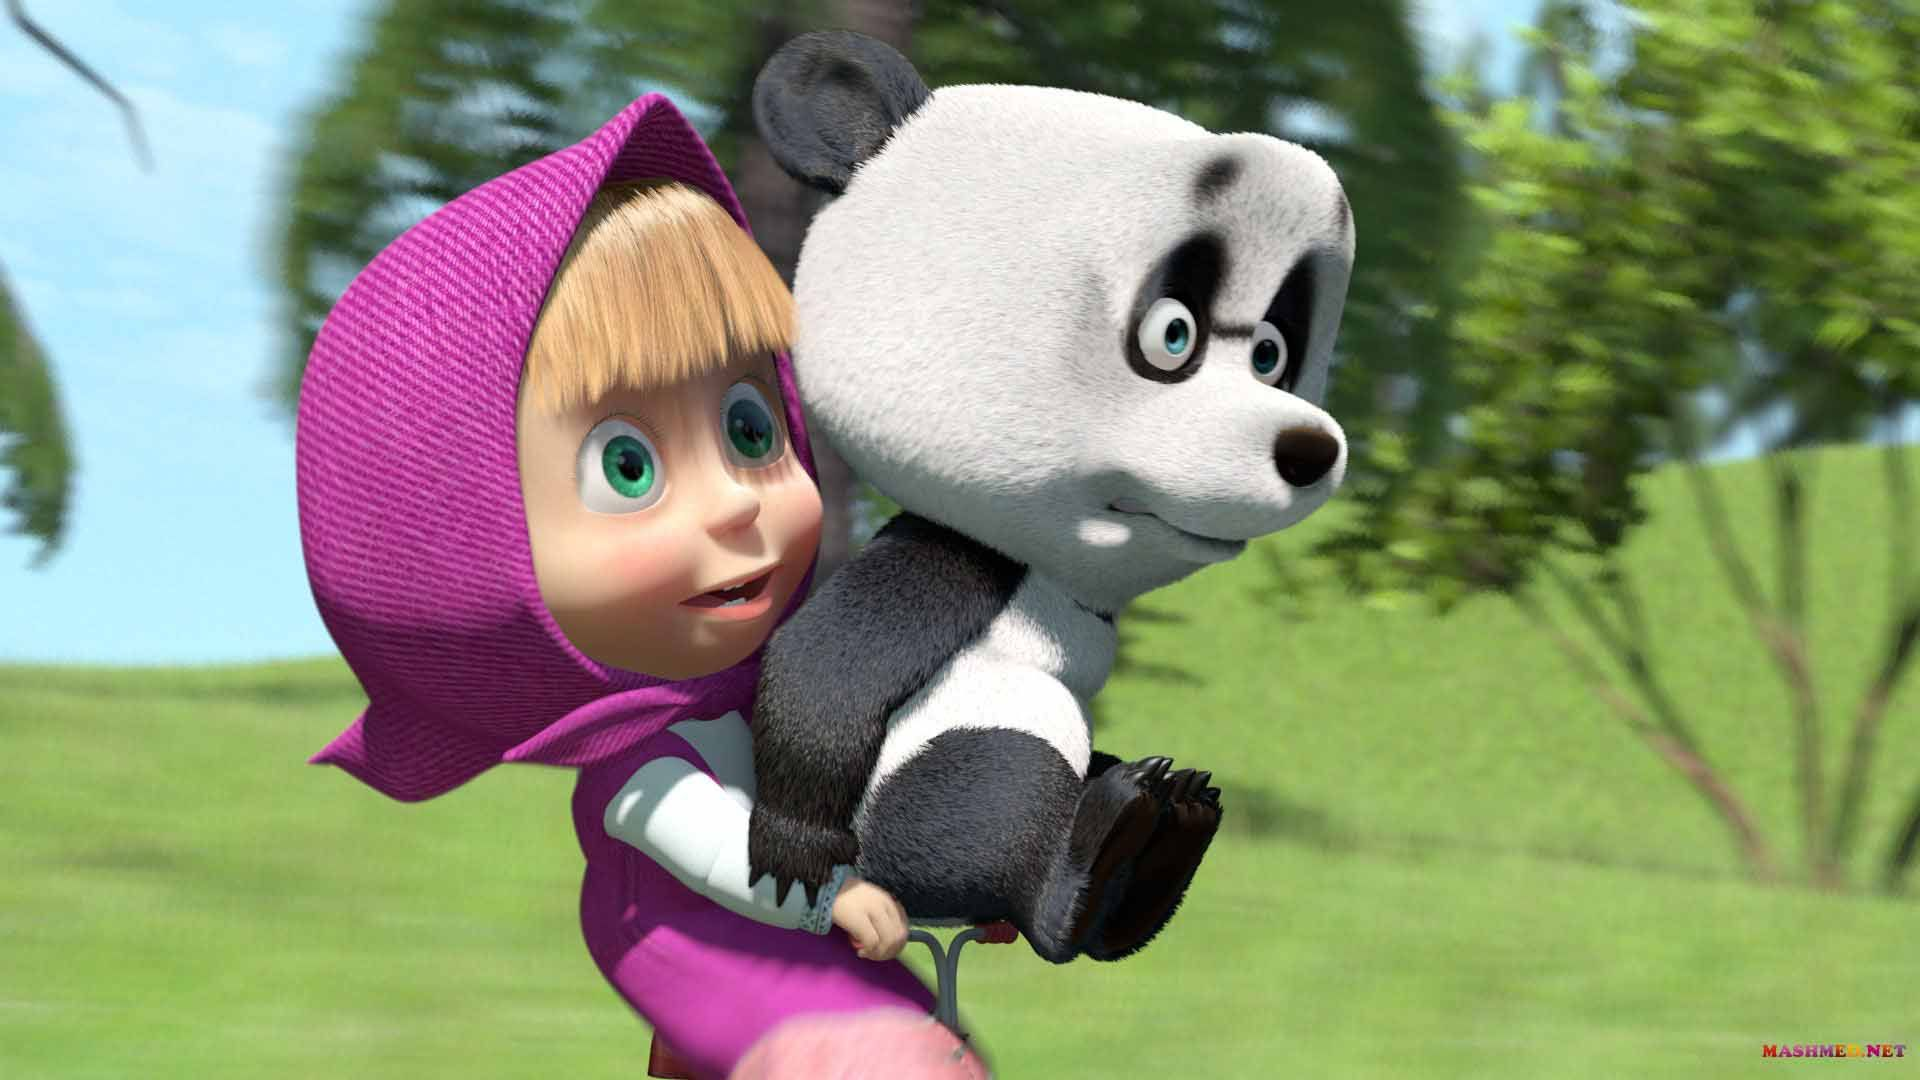 Masha And The Bear Wallpaper Themes Cute Wallpaper